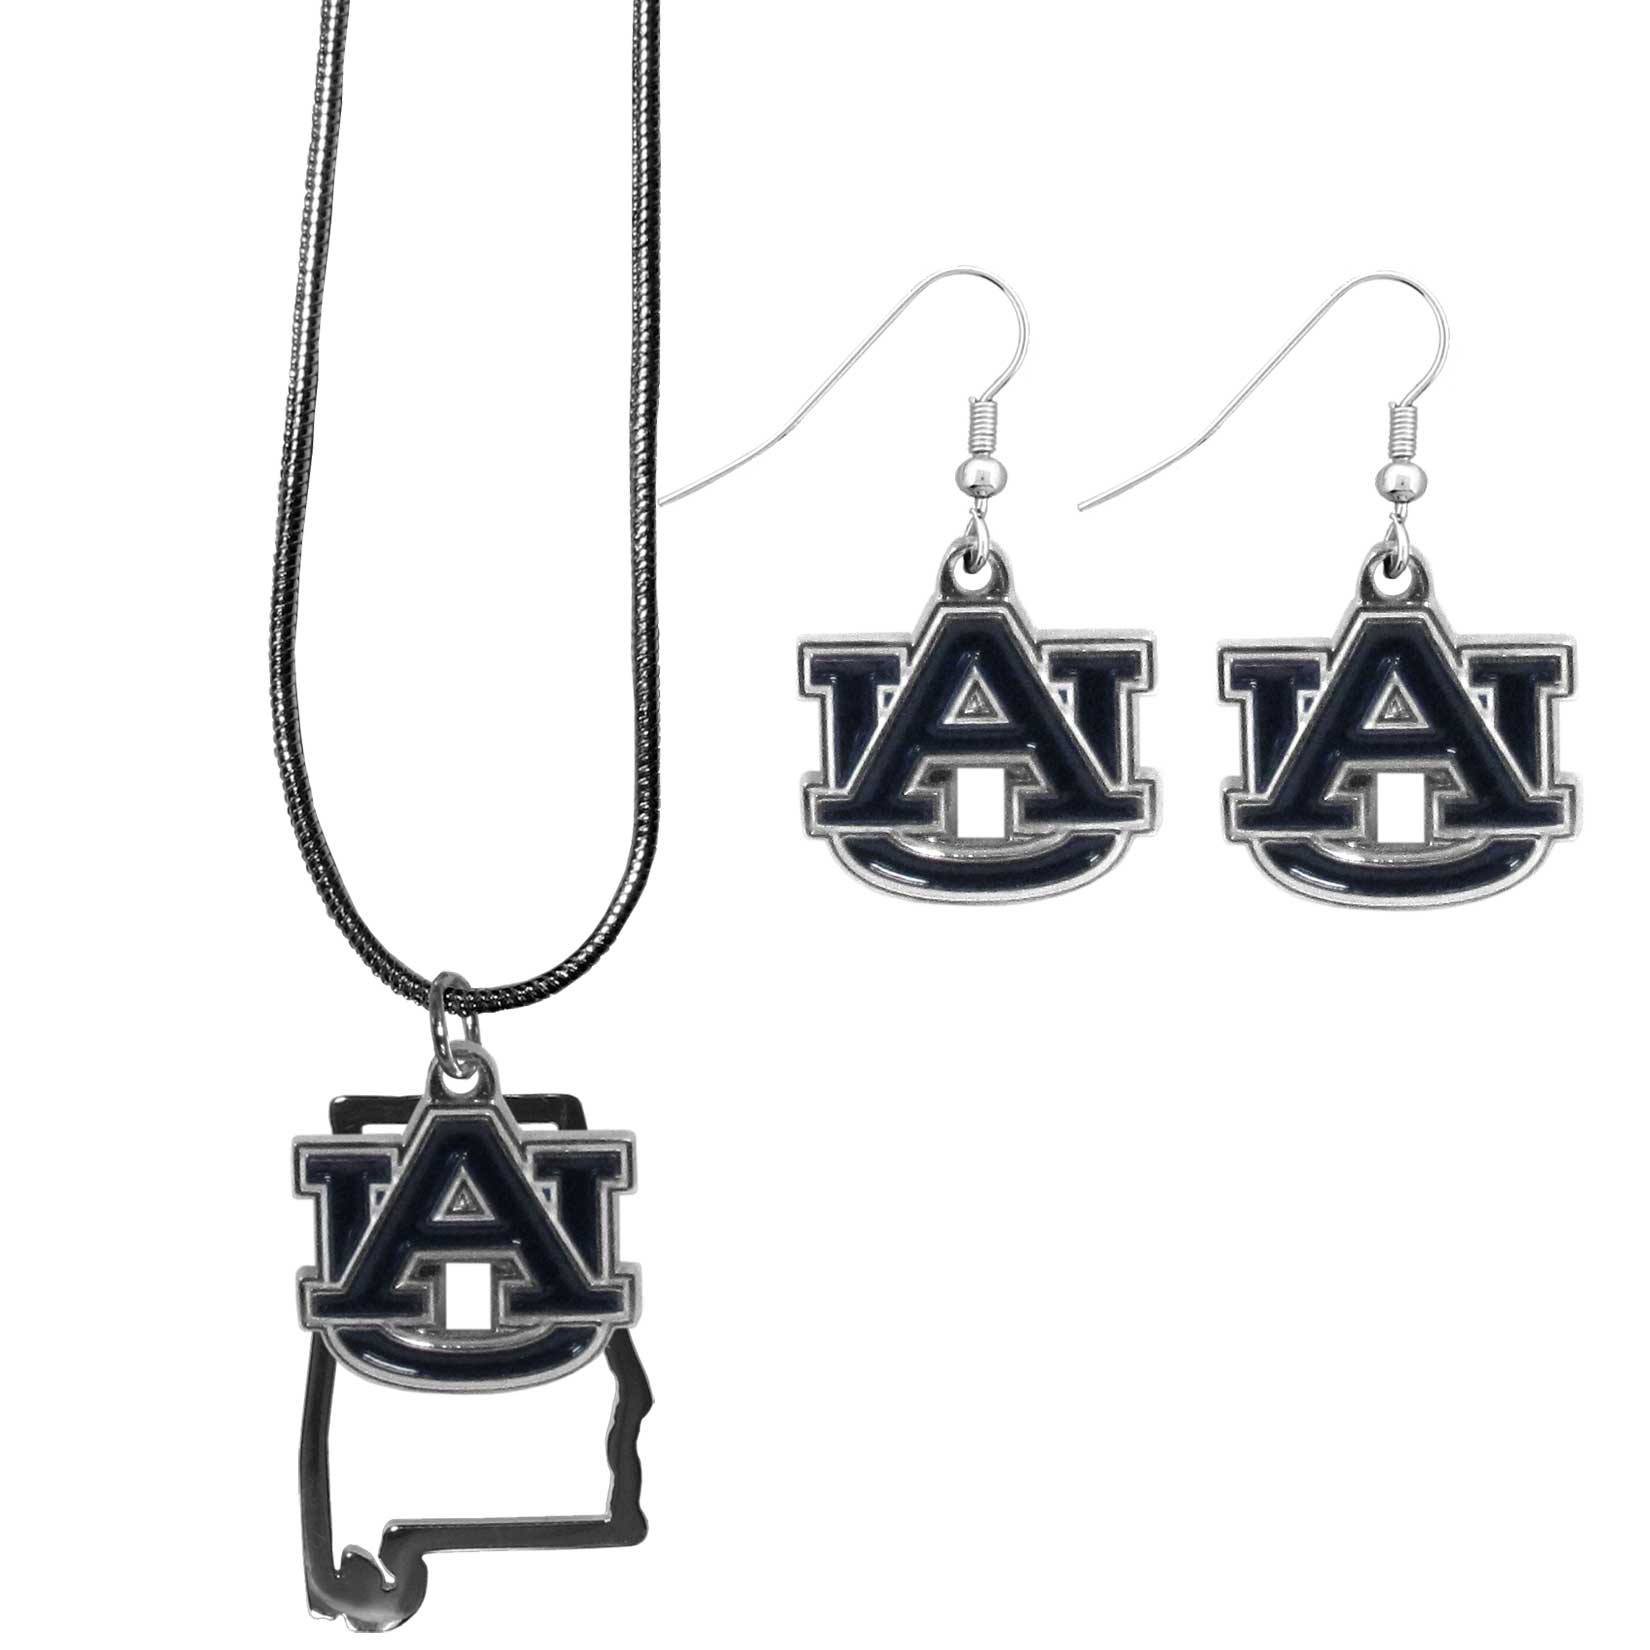 Auburn Tigers Dangle Earrings and State Necklace Set - Get in on the trend! State themes are a trend that just keeps getting more popular and this jewelry set takes the state style and give it a sporty twist with a Auburn Tigers necklace that features an Arizona state outline charm paired with a beautiful team charm and matching team charm dangle earrings. The earrings feature hypoallergenic fishhook posts that are nickel free.